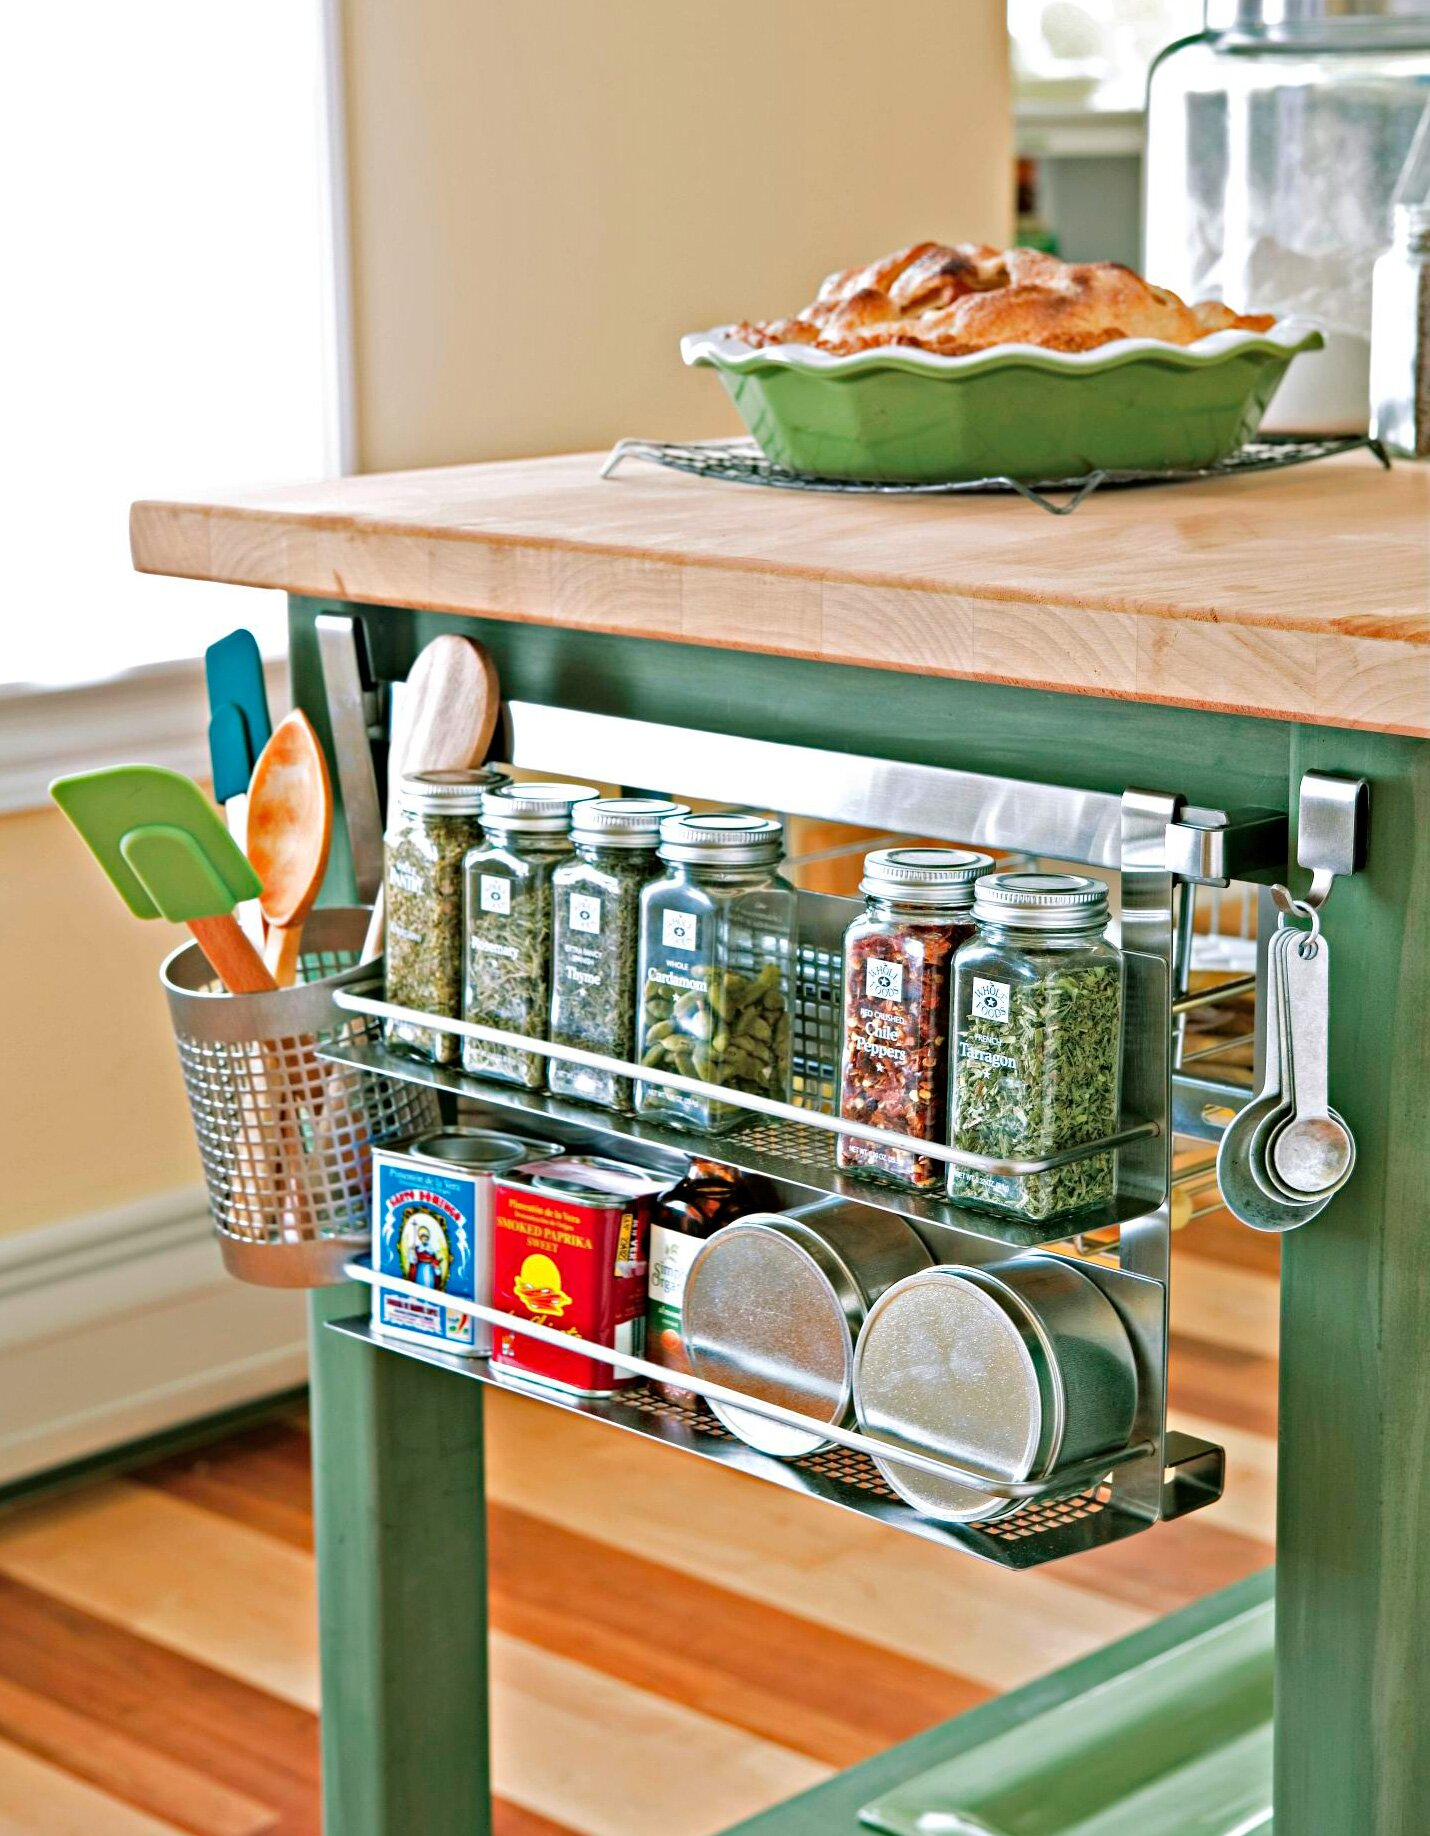 30 Quick and Easy Ideas for Kitchen Organization | Midwest ... on handmade gifts for kitchen, organization ideas for entryway, organization ideas for work, organization ideas for desk, organization ideas for house, organization ideas for books, diy for kitchen, organization ideas for dishes, organization ideas for shoes, organization ideas for jewelry, organization ideas for closet, organization ideas home, organization ideas bathroom, embroidery for kitchen, colors for kitchen, organization ideas garage, organization ideas for baby, organization ideas for pantry, food for kitchen, organization ideas for countertop,